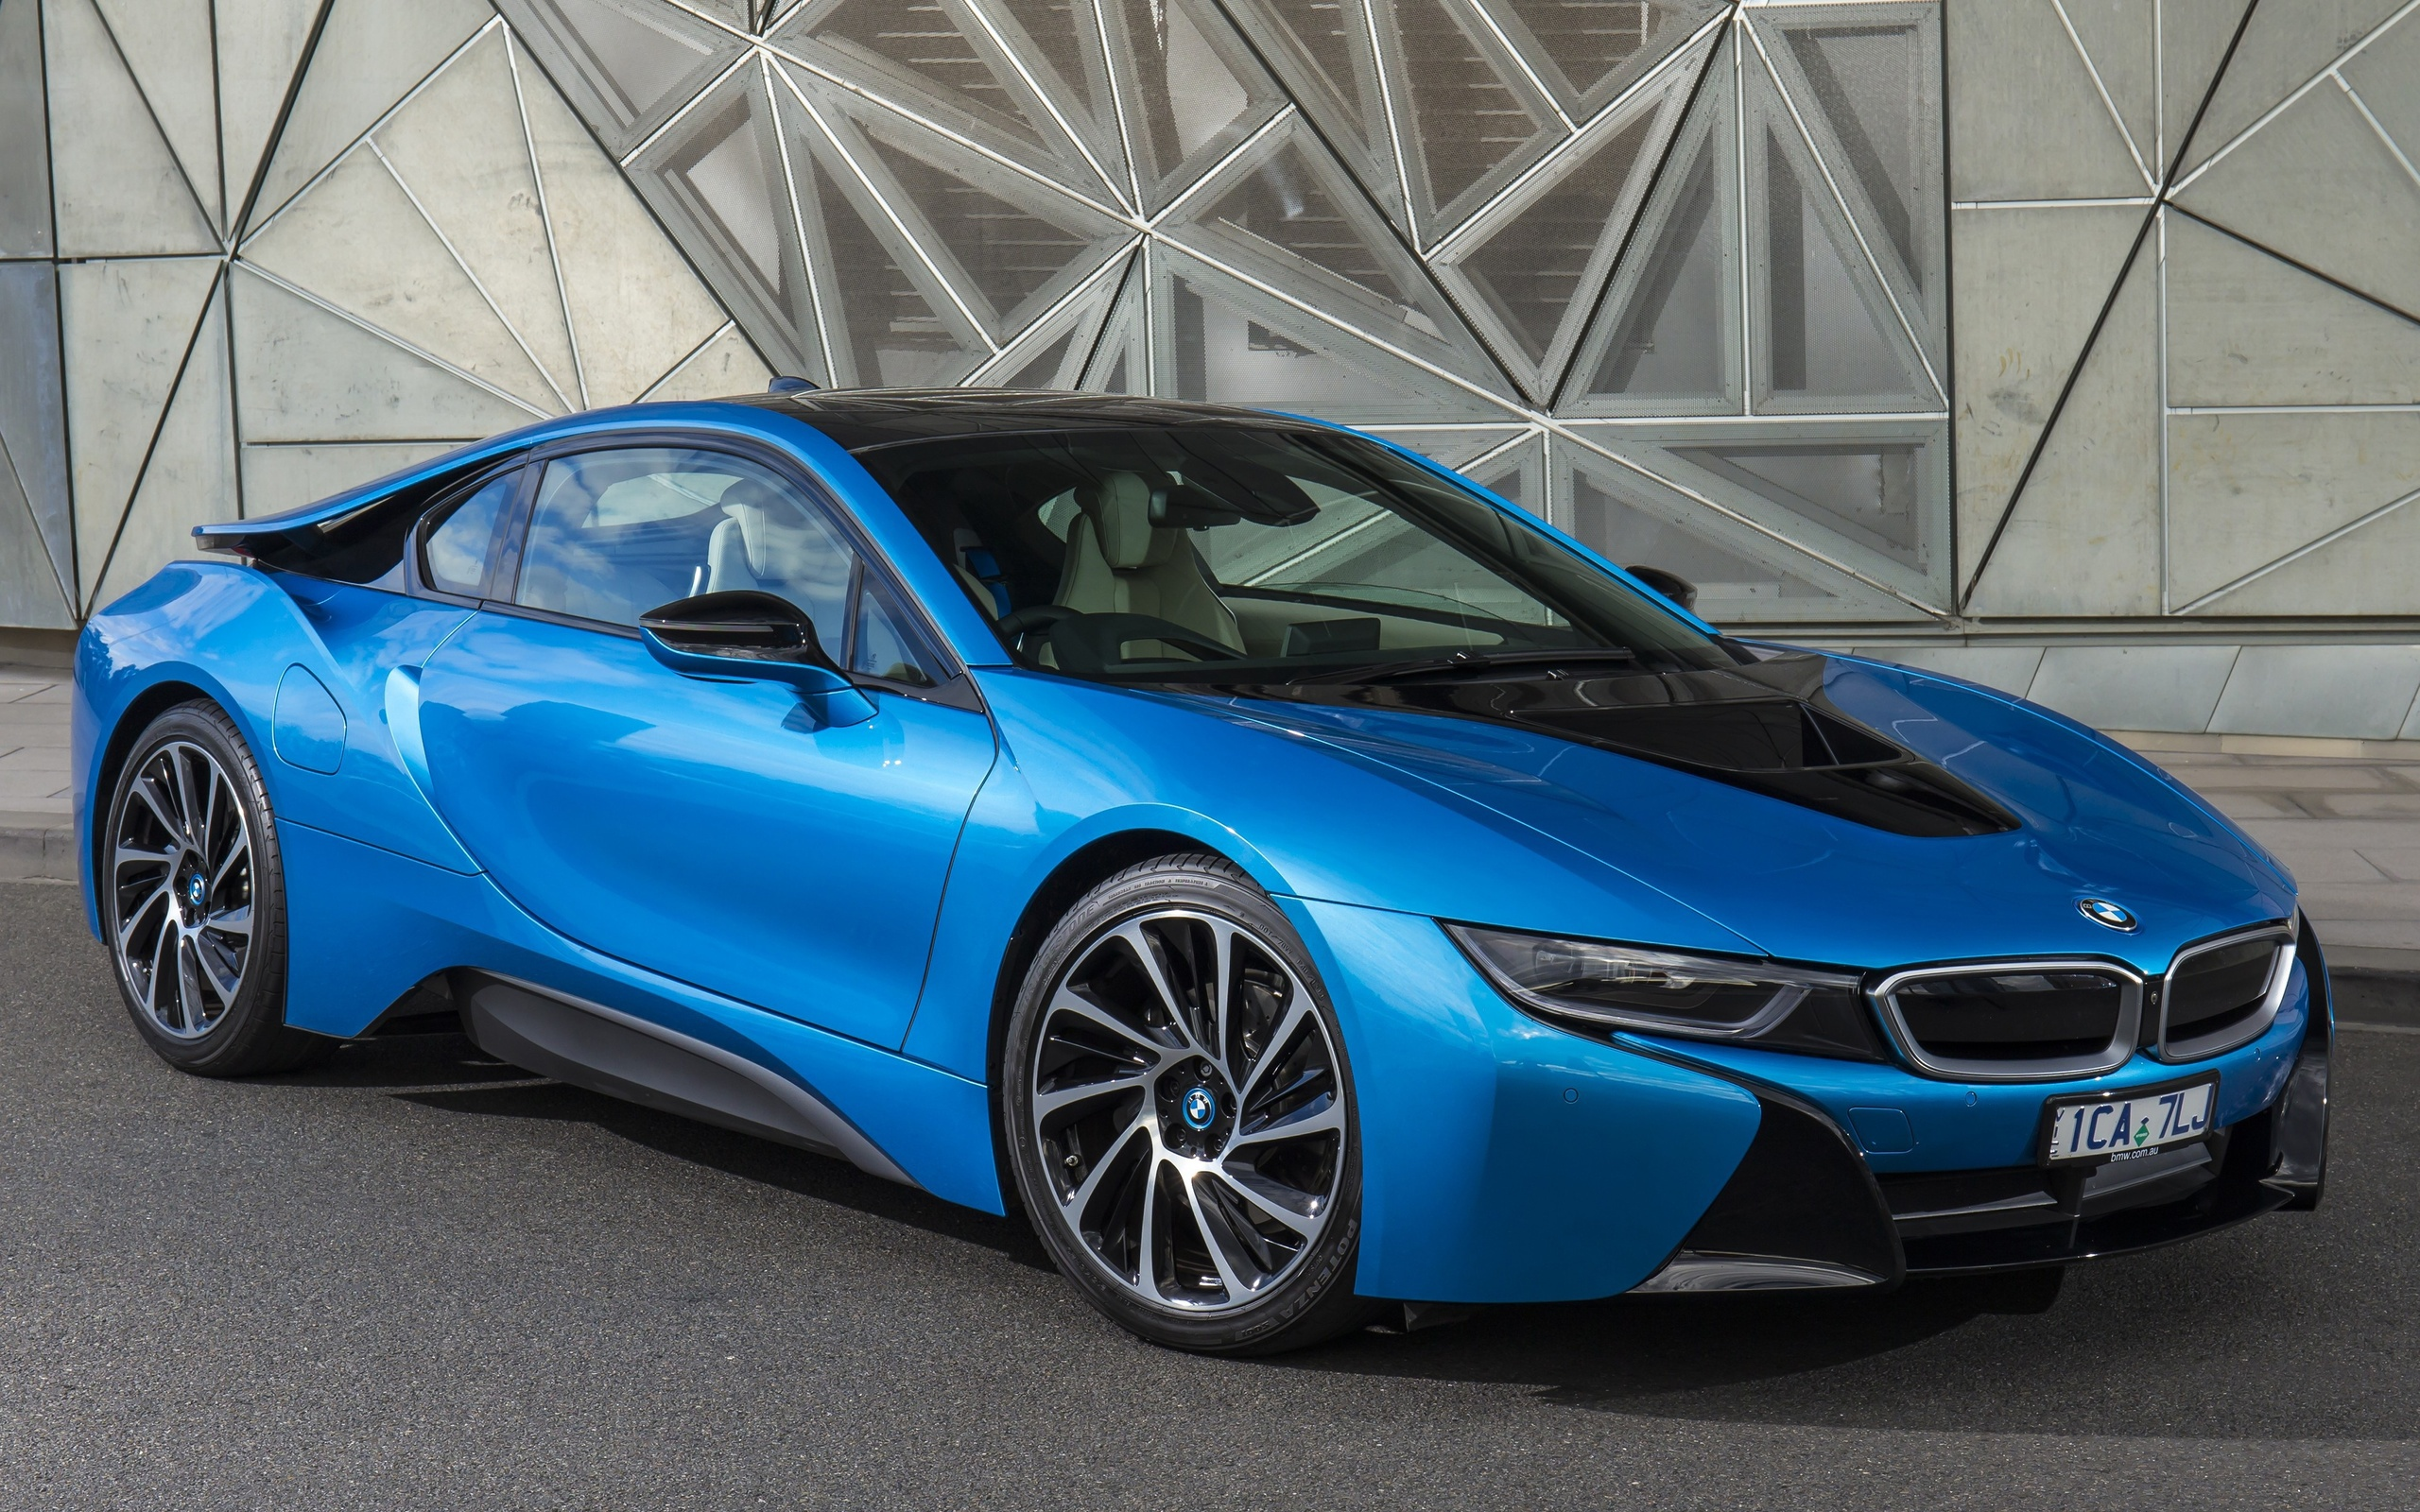 bmw i8 wallpapers images photos pictures backgrounds. Black Bedroom Furniture Sets. Home Design Ideas